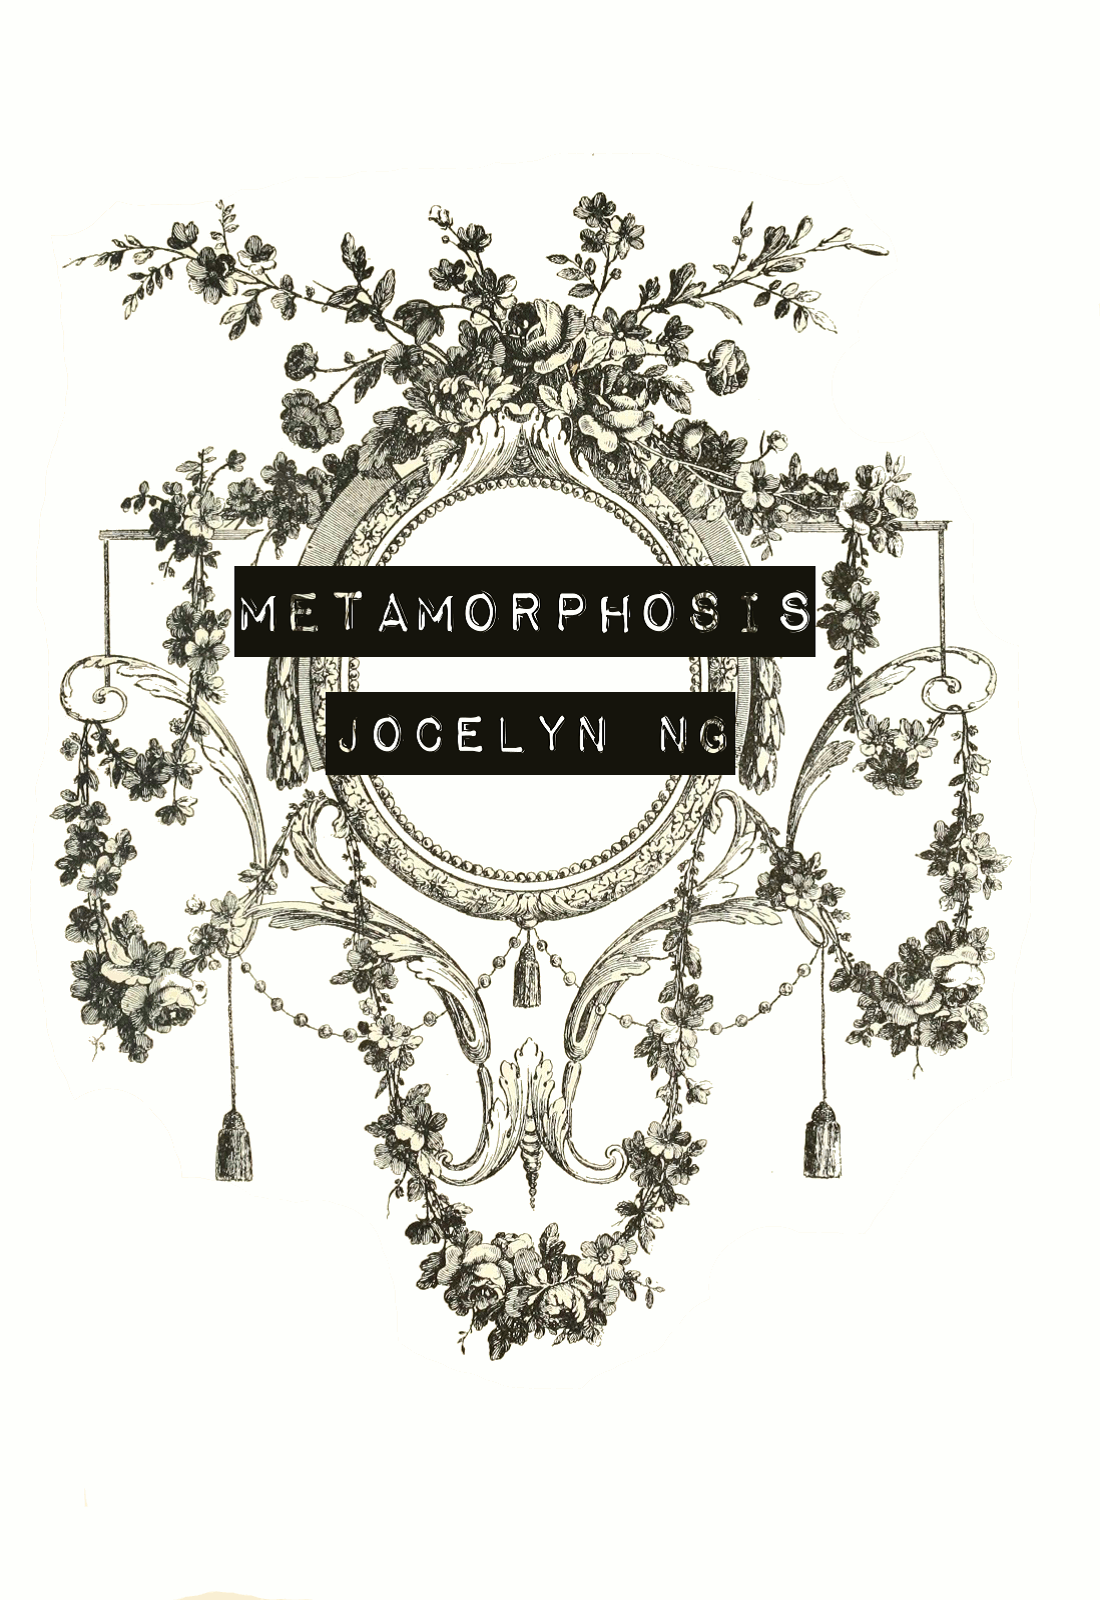 Purchase a copy of Metamorphosis by going to the link below this image.